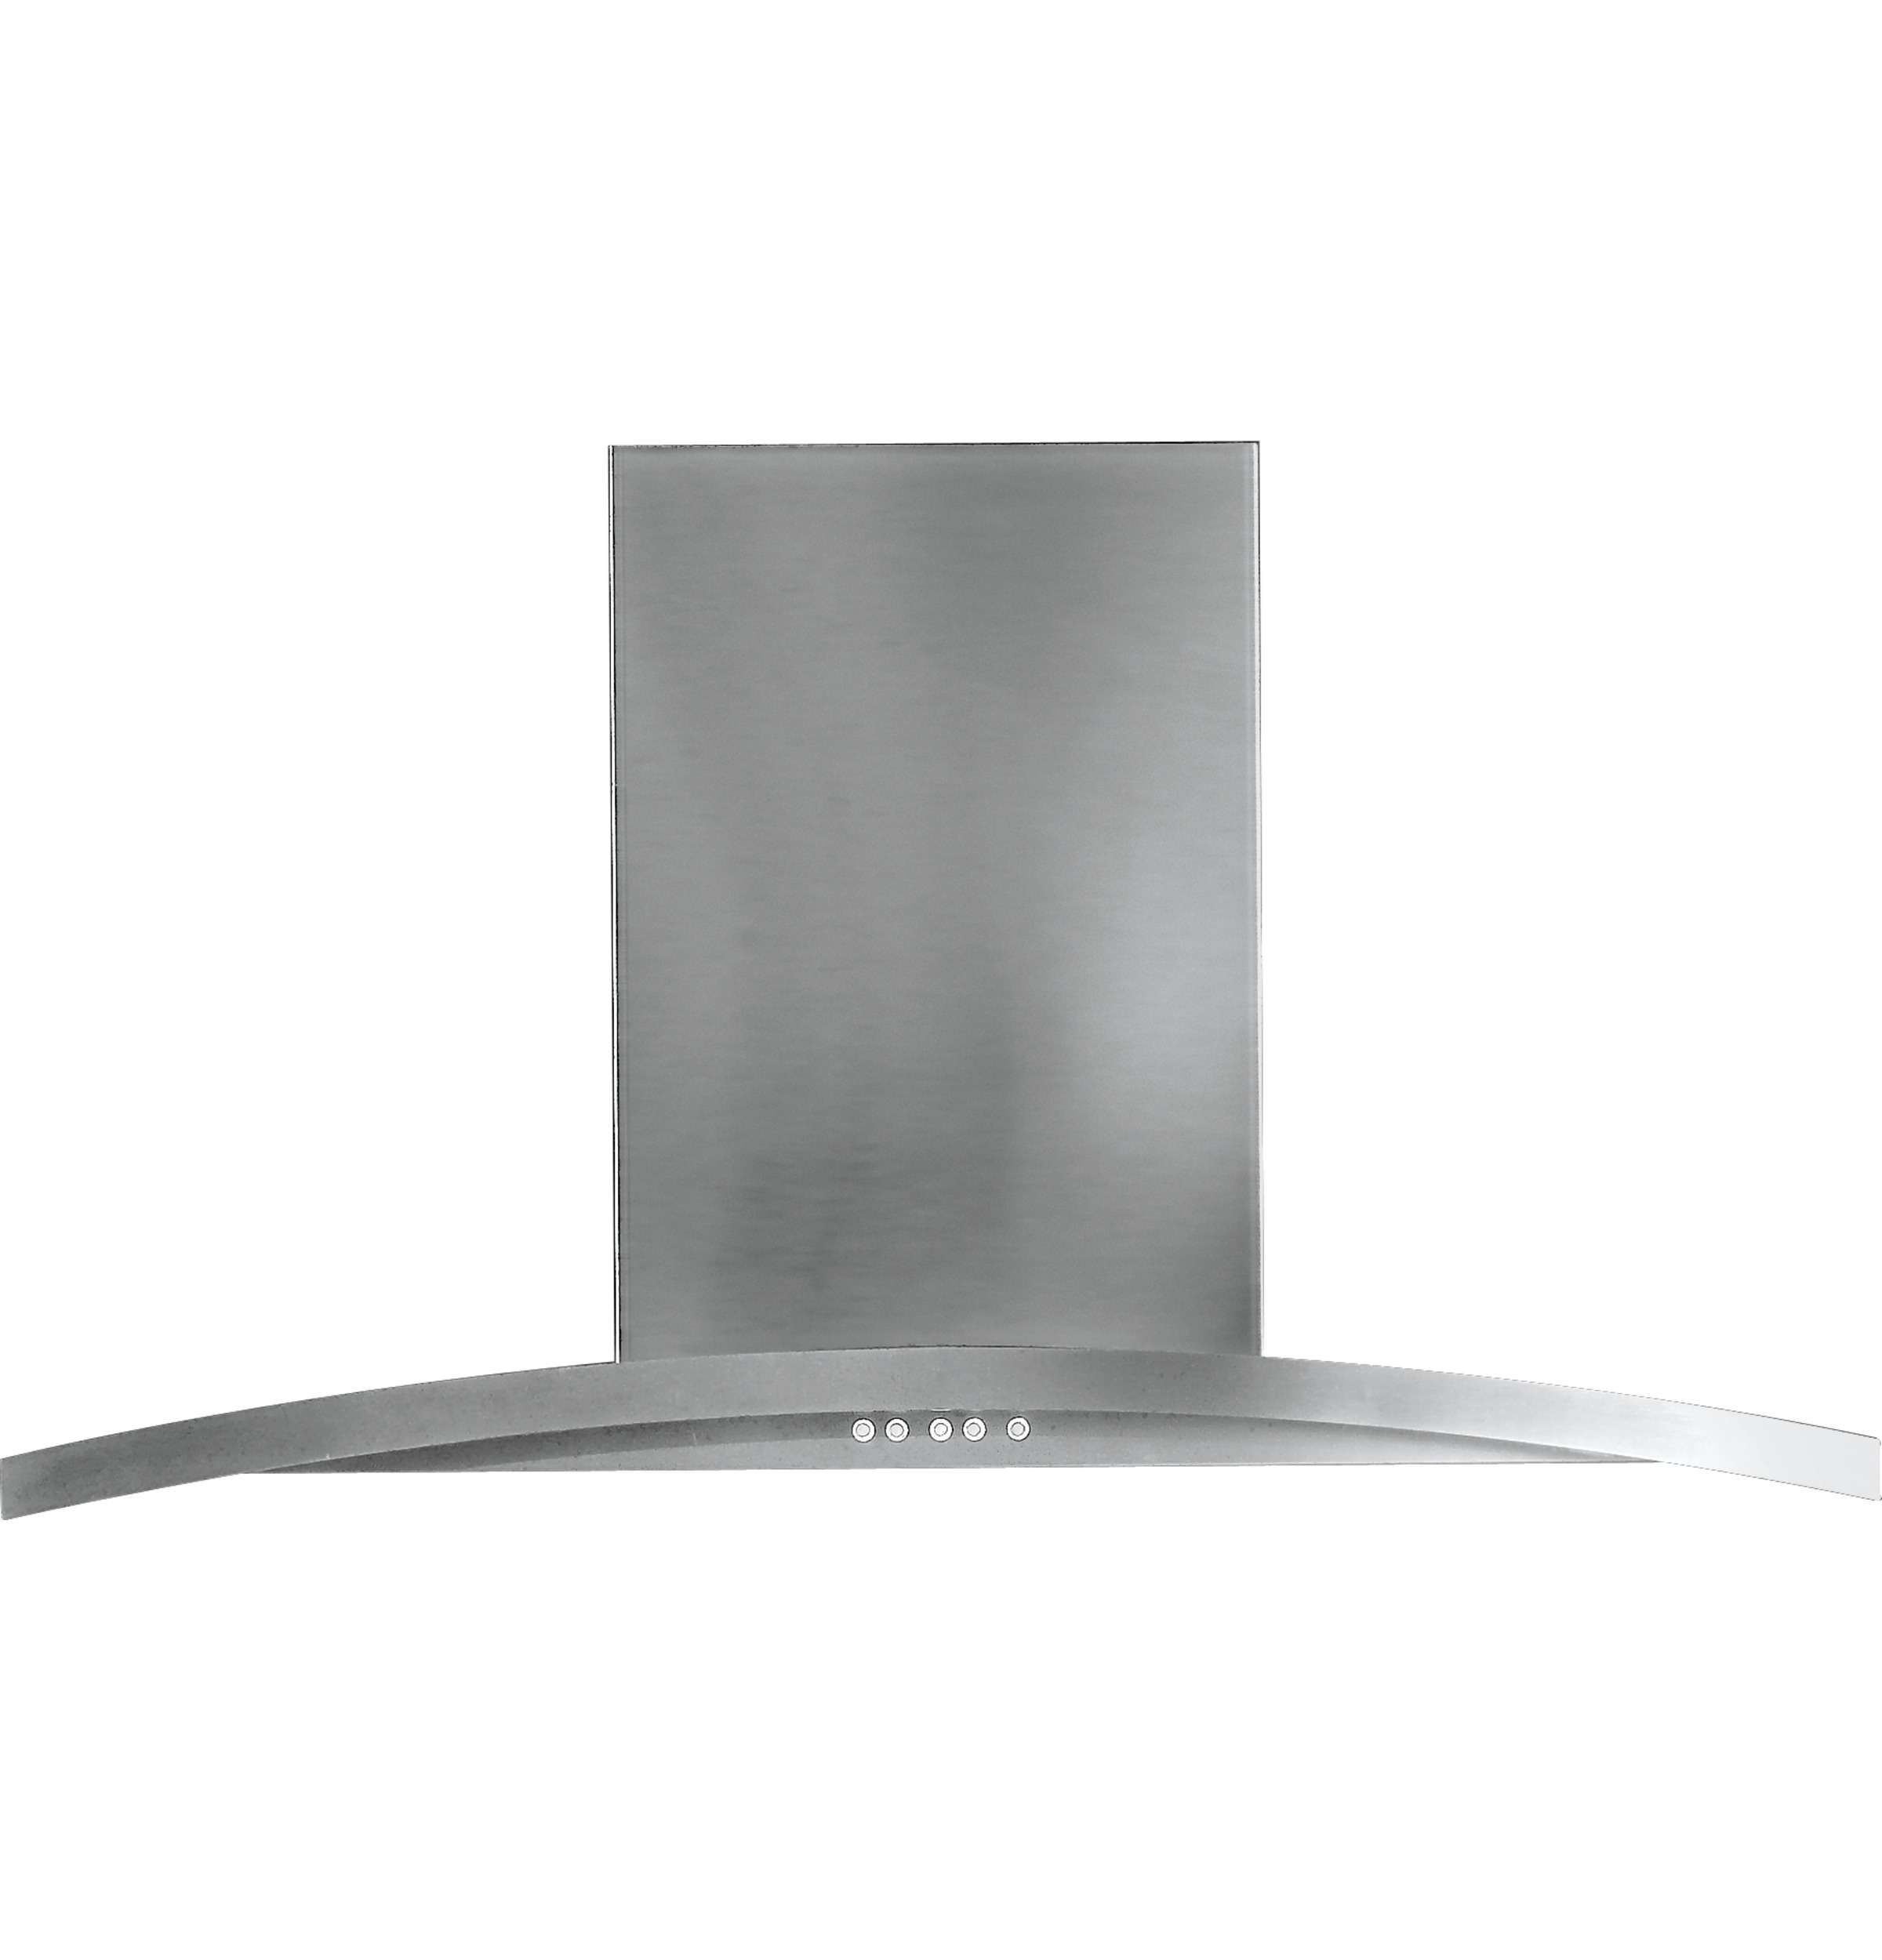 GE Profile 36 In. Stainless Steel Wall Mount Hood - PV976NSS Image 2